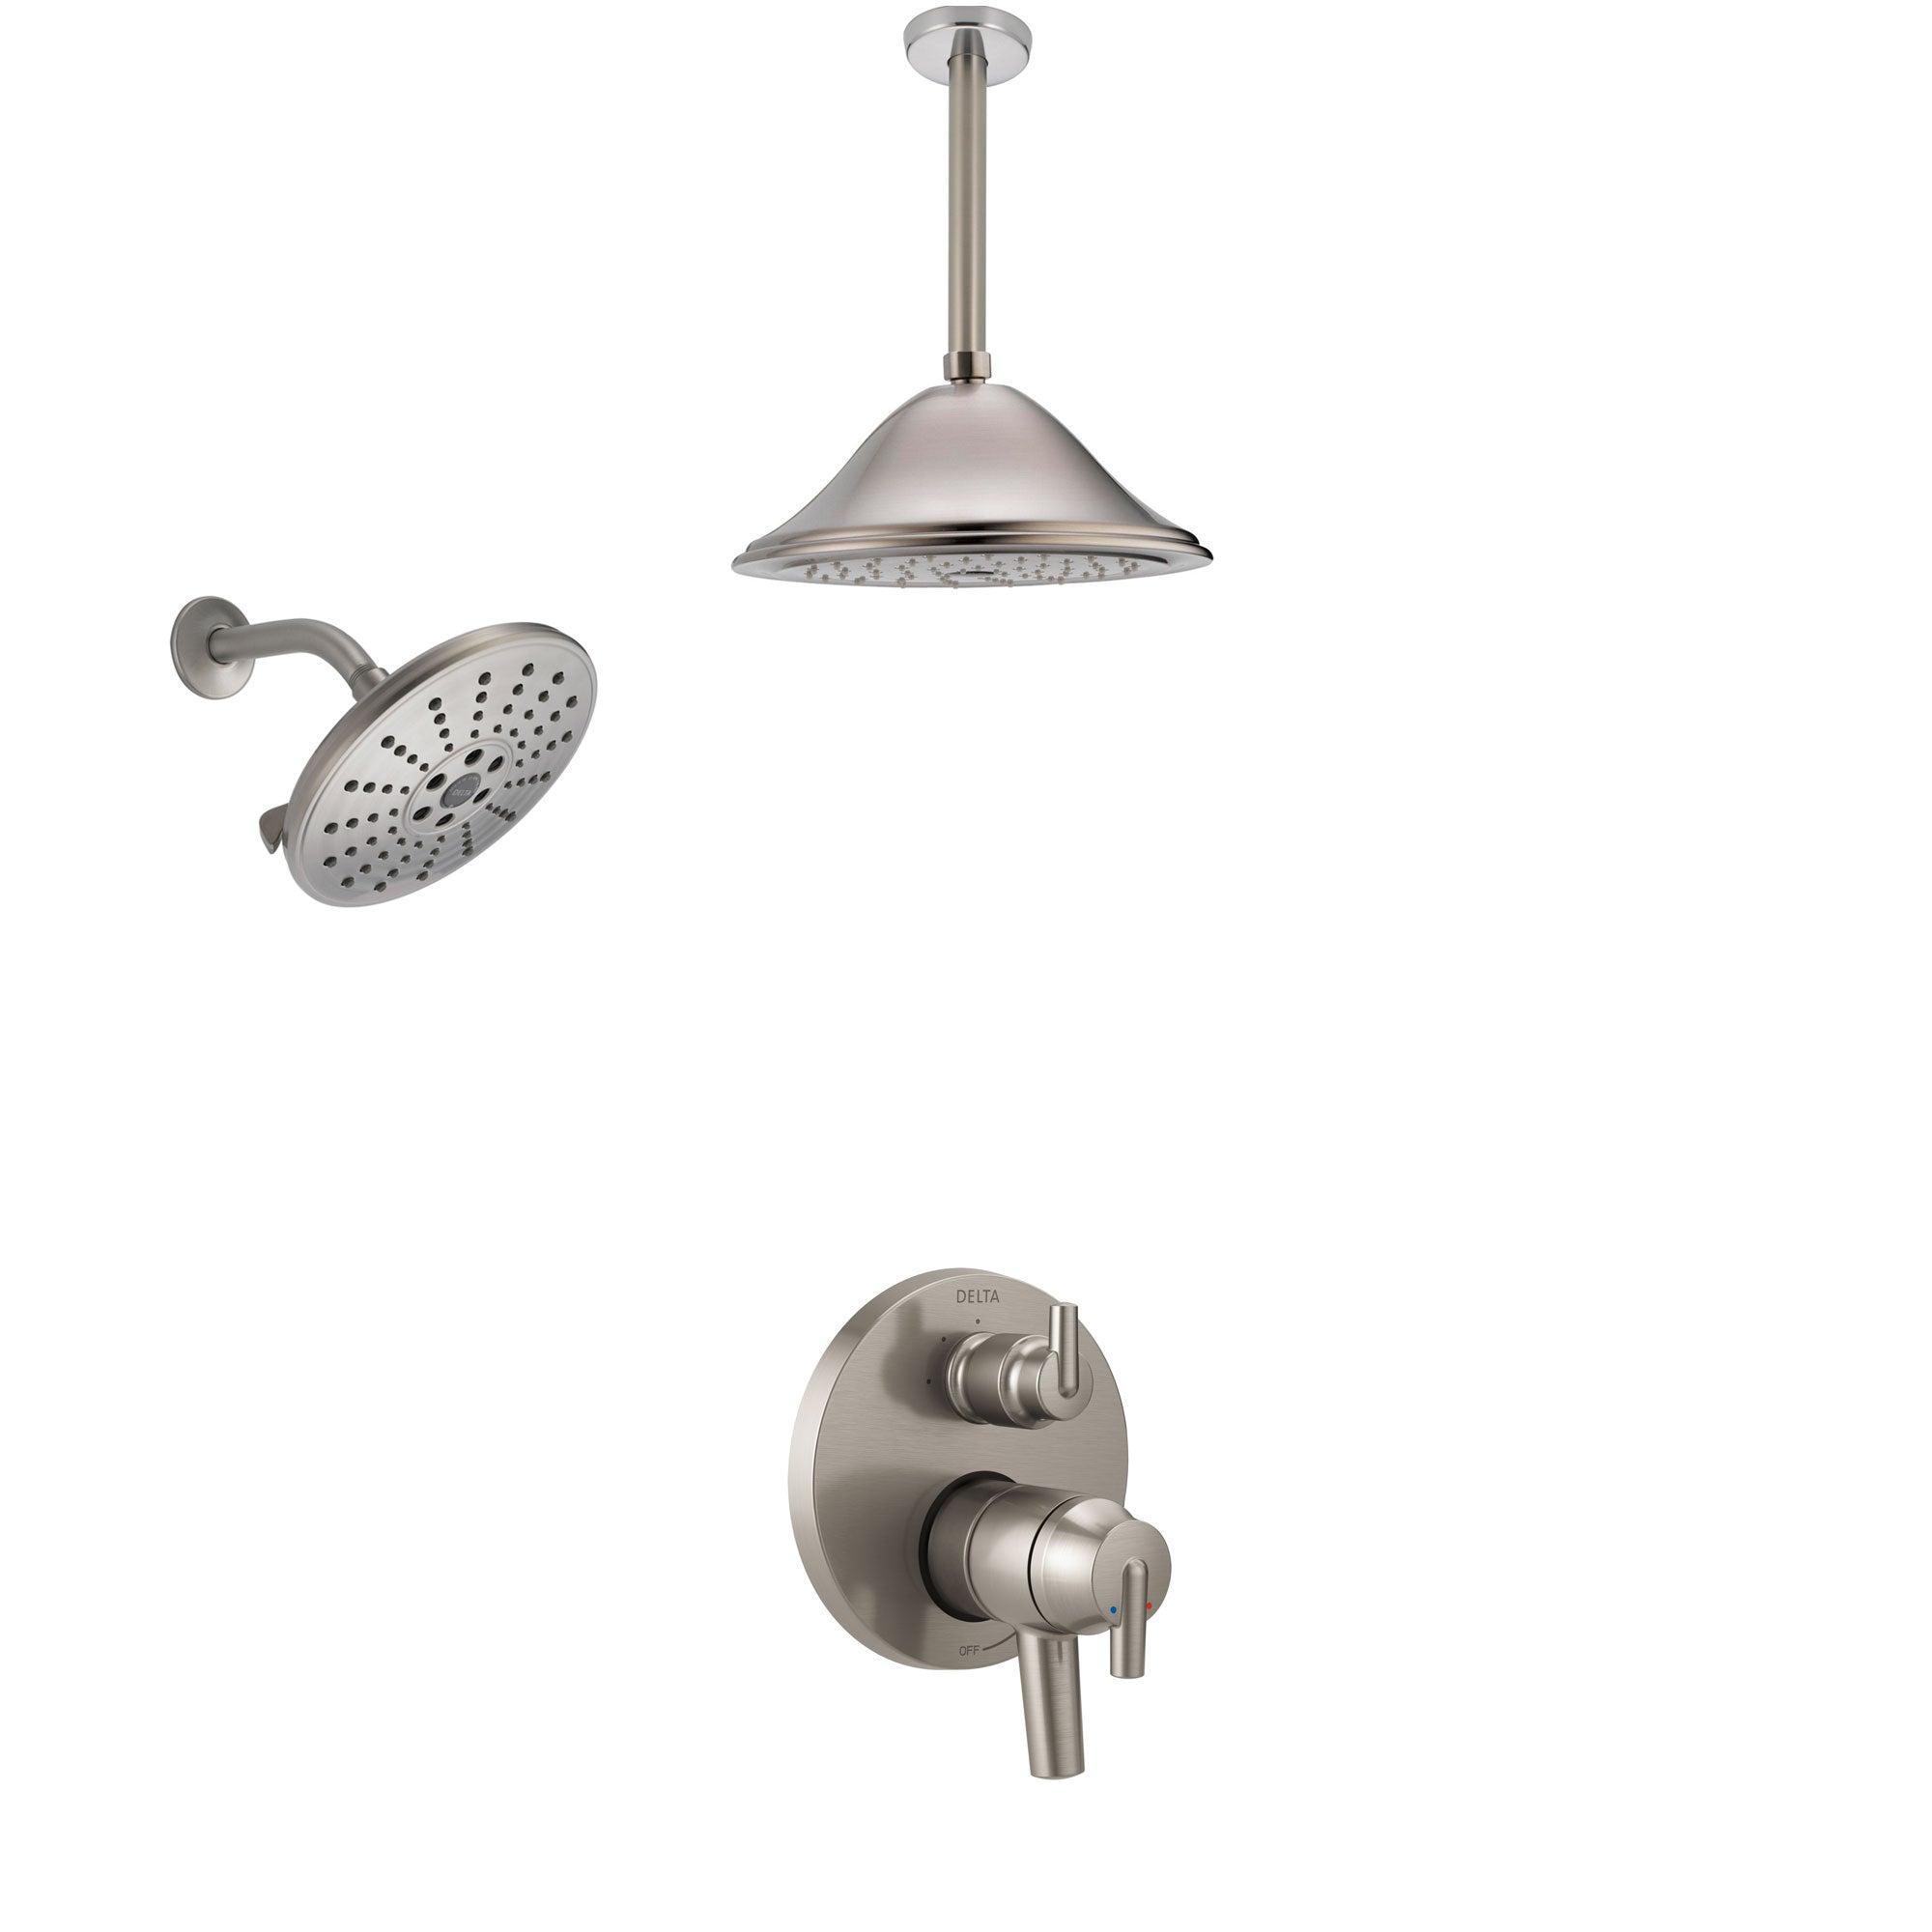 Delta Trinsic Stainless Steel Finish Shower System with Dual Control Handle, Integrated Diverter, Showerhead, and Ceiling Mount Showerhead SS27859SS8